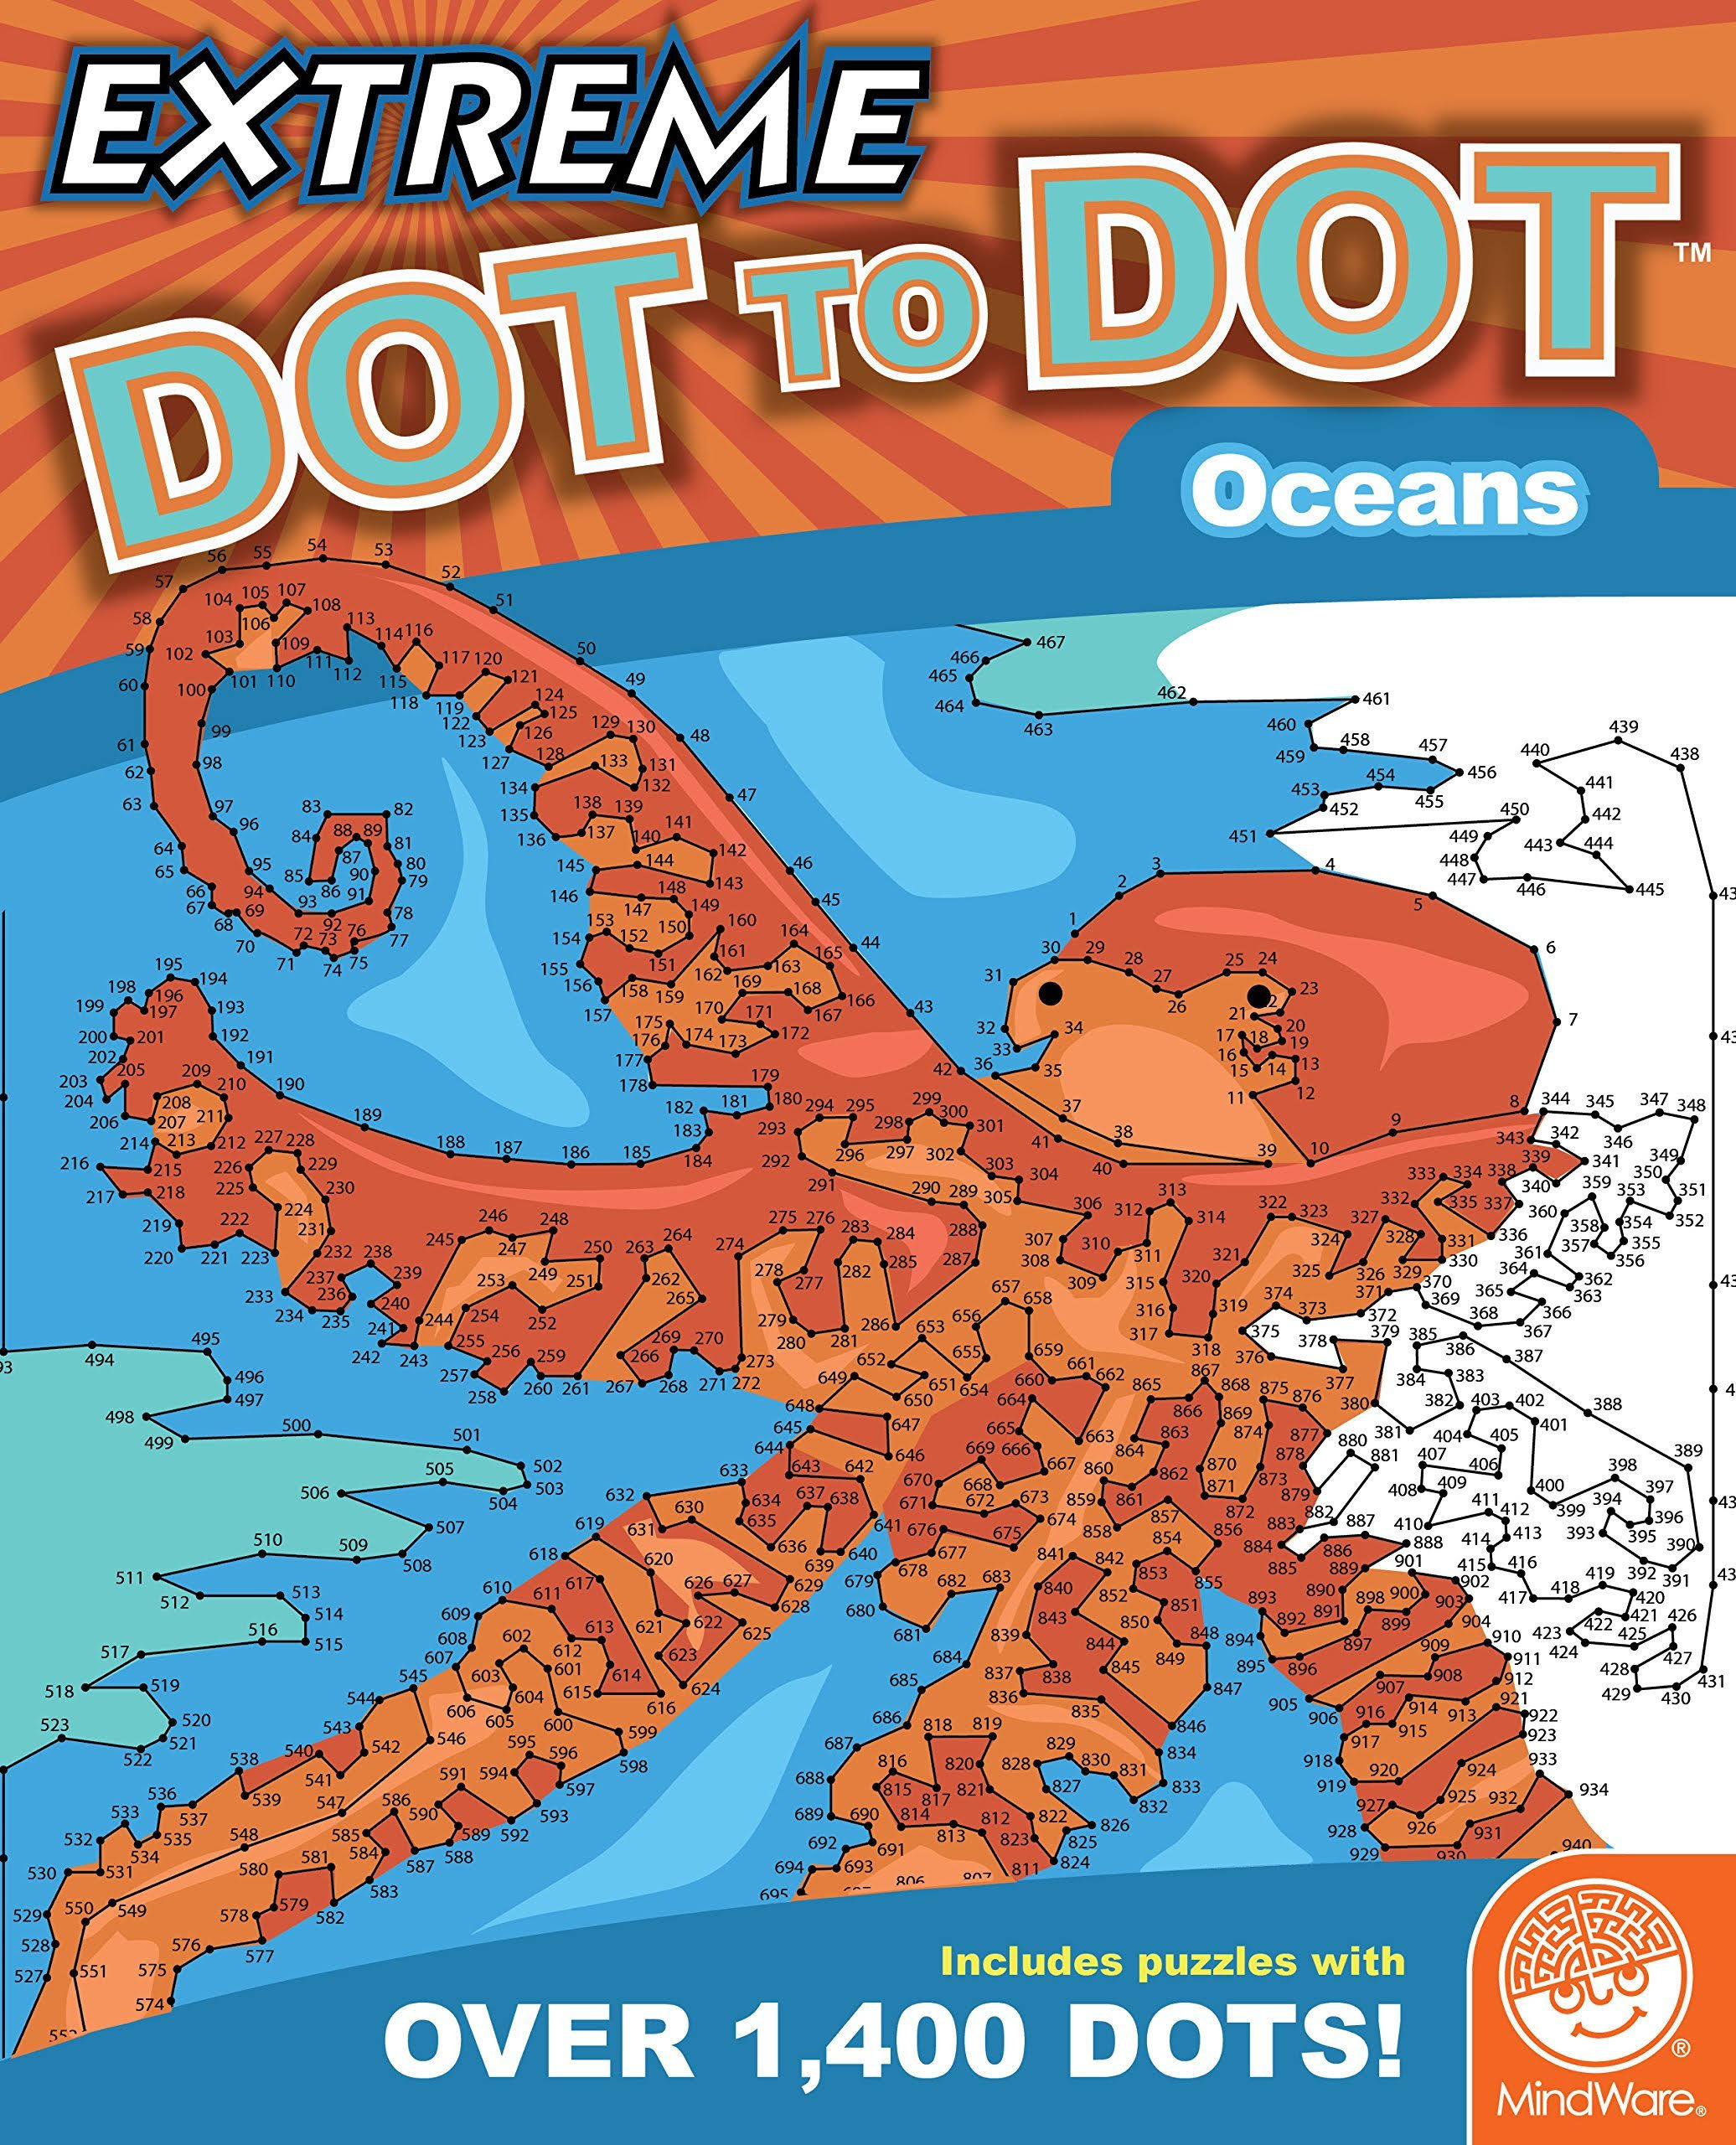 MindWare Extreme Dot to Dot (Oceans)